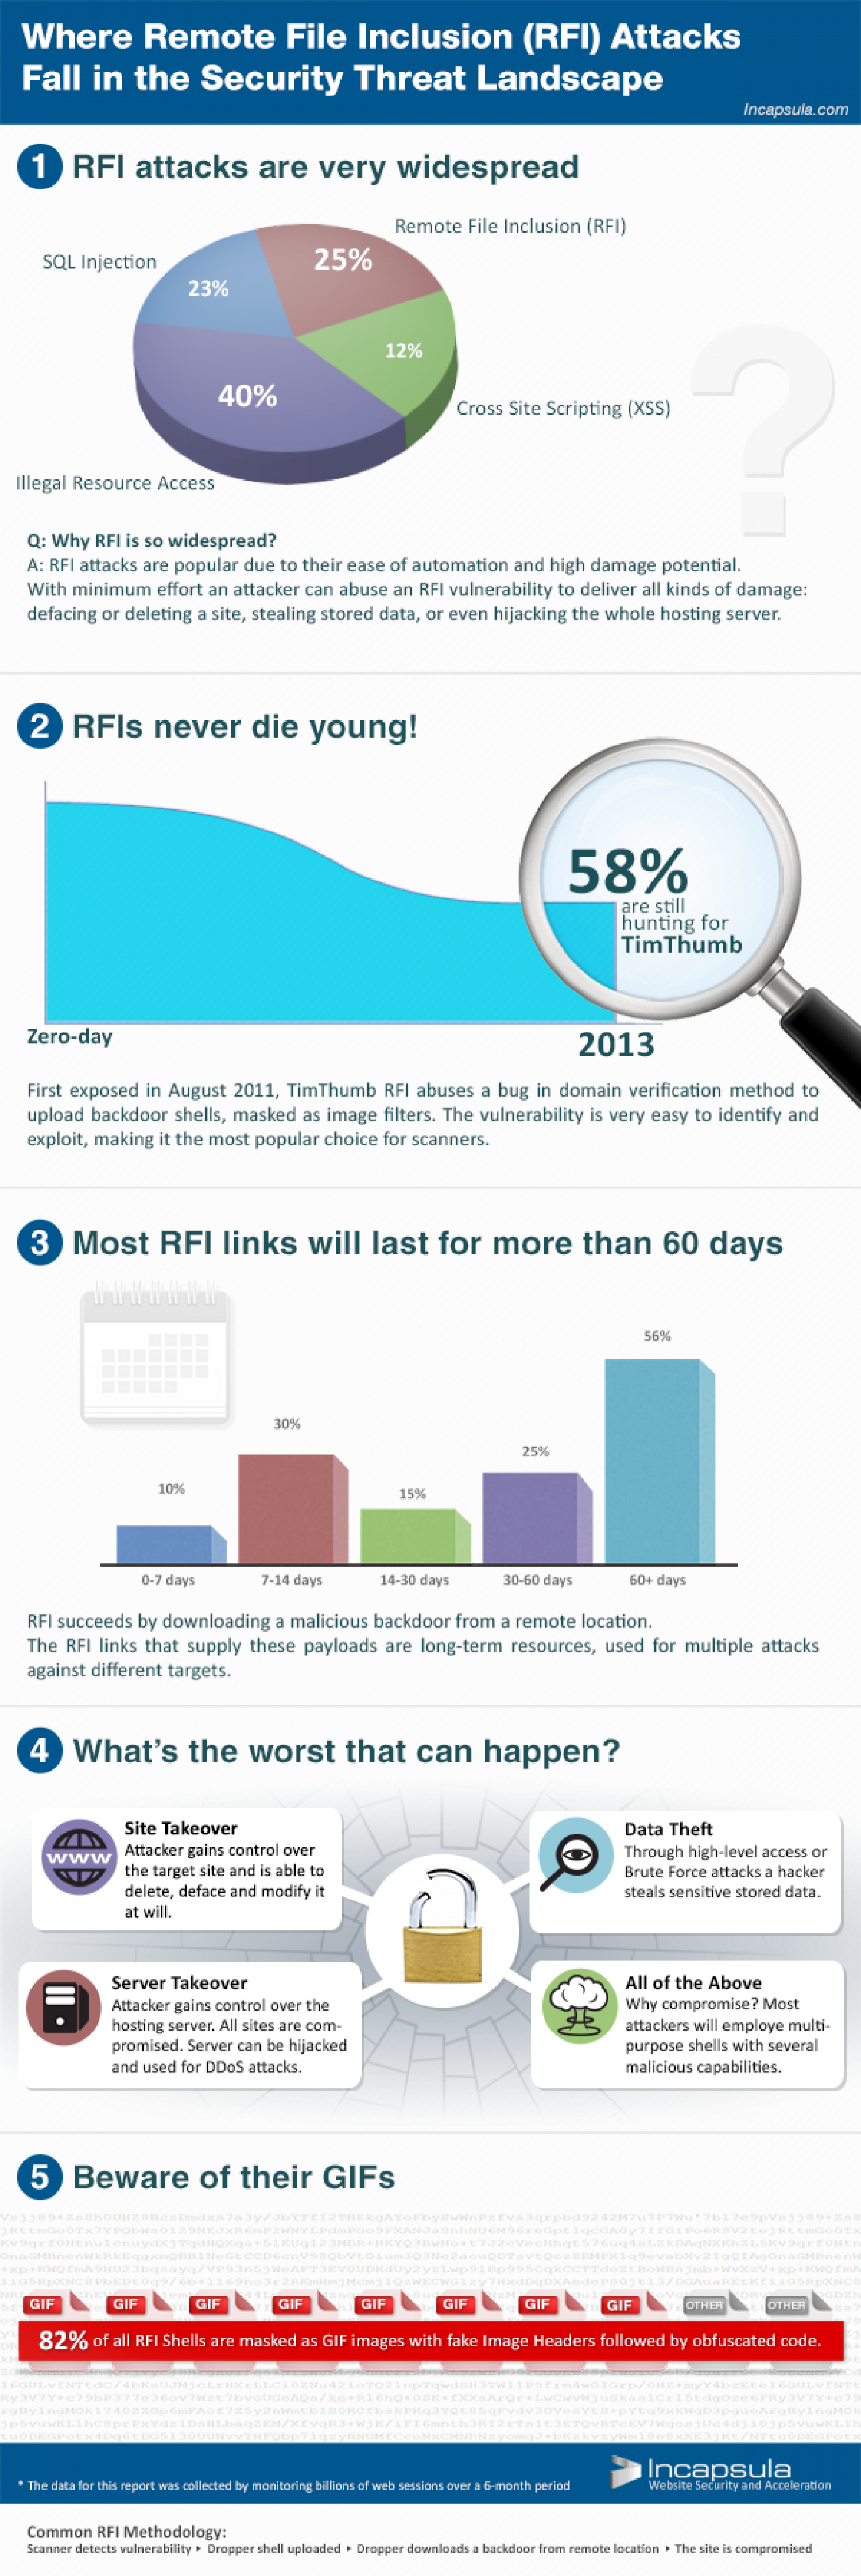 Web Application Firewall Infographic